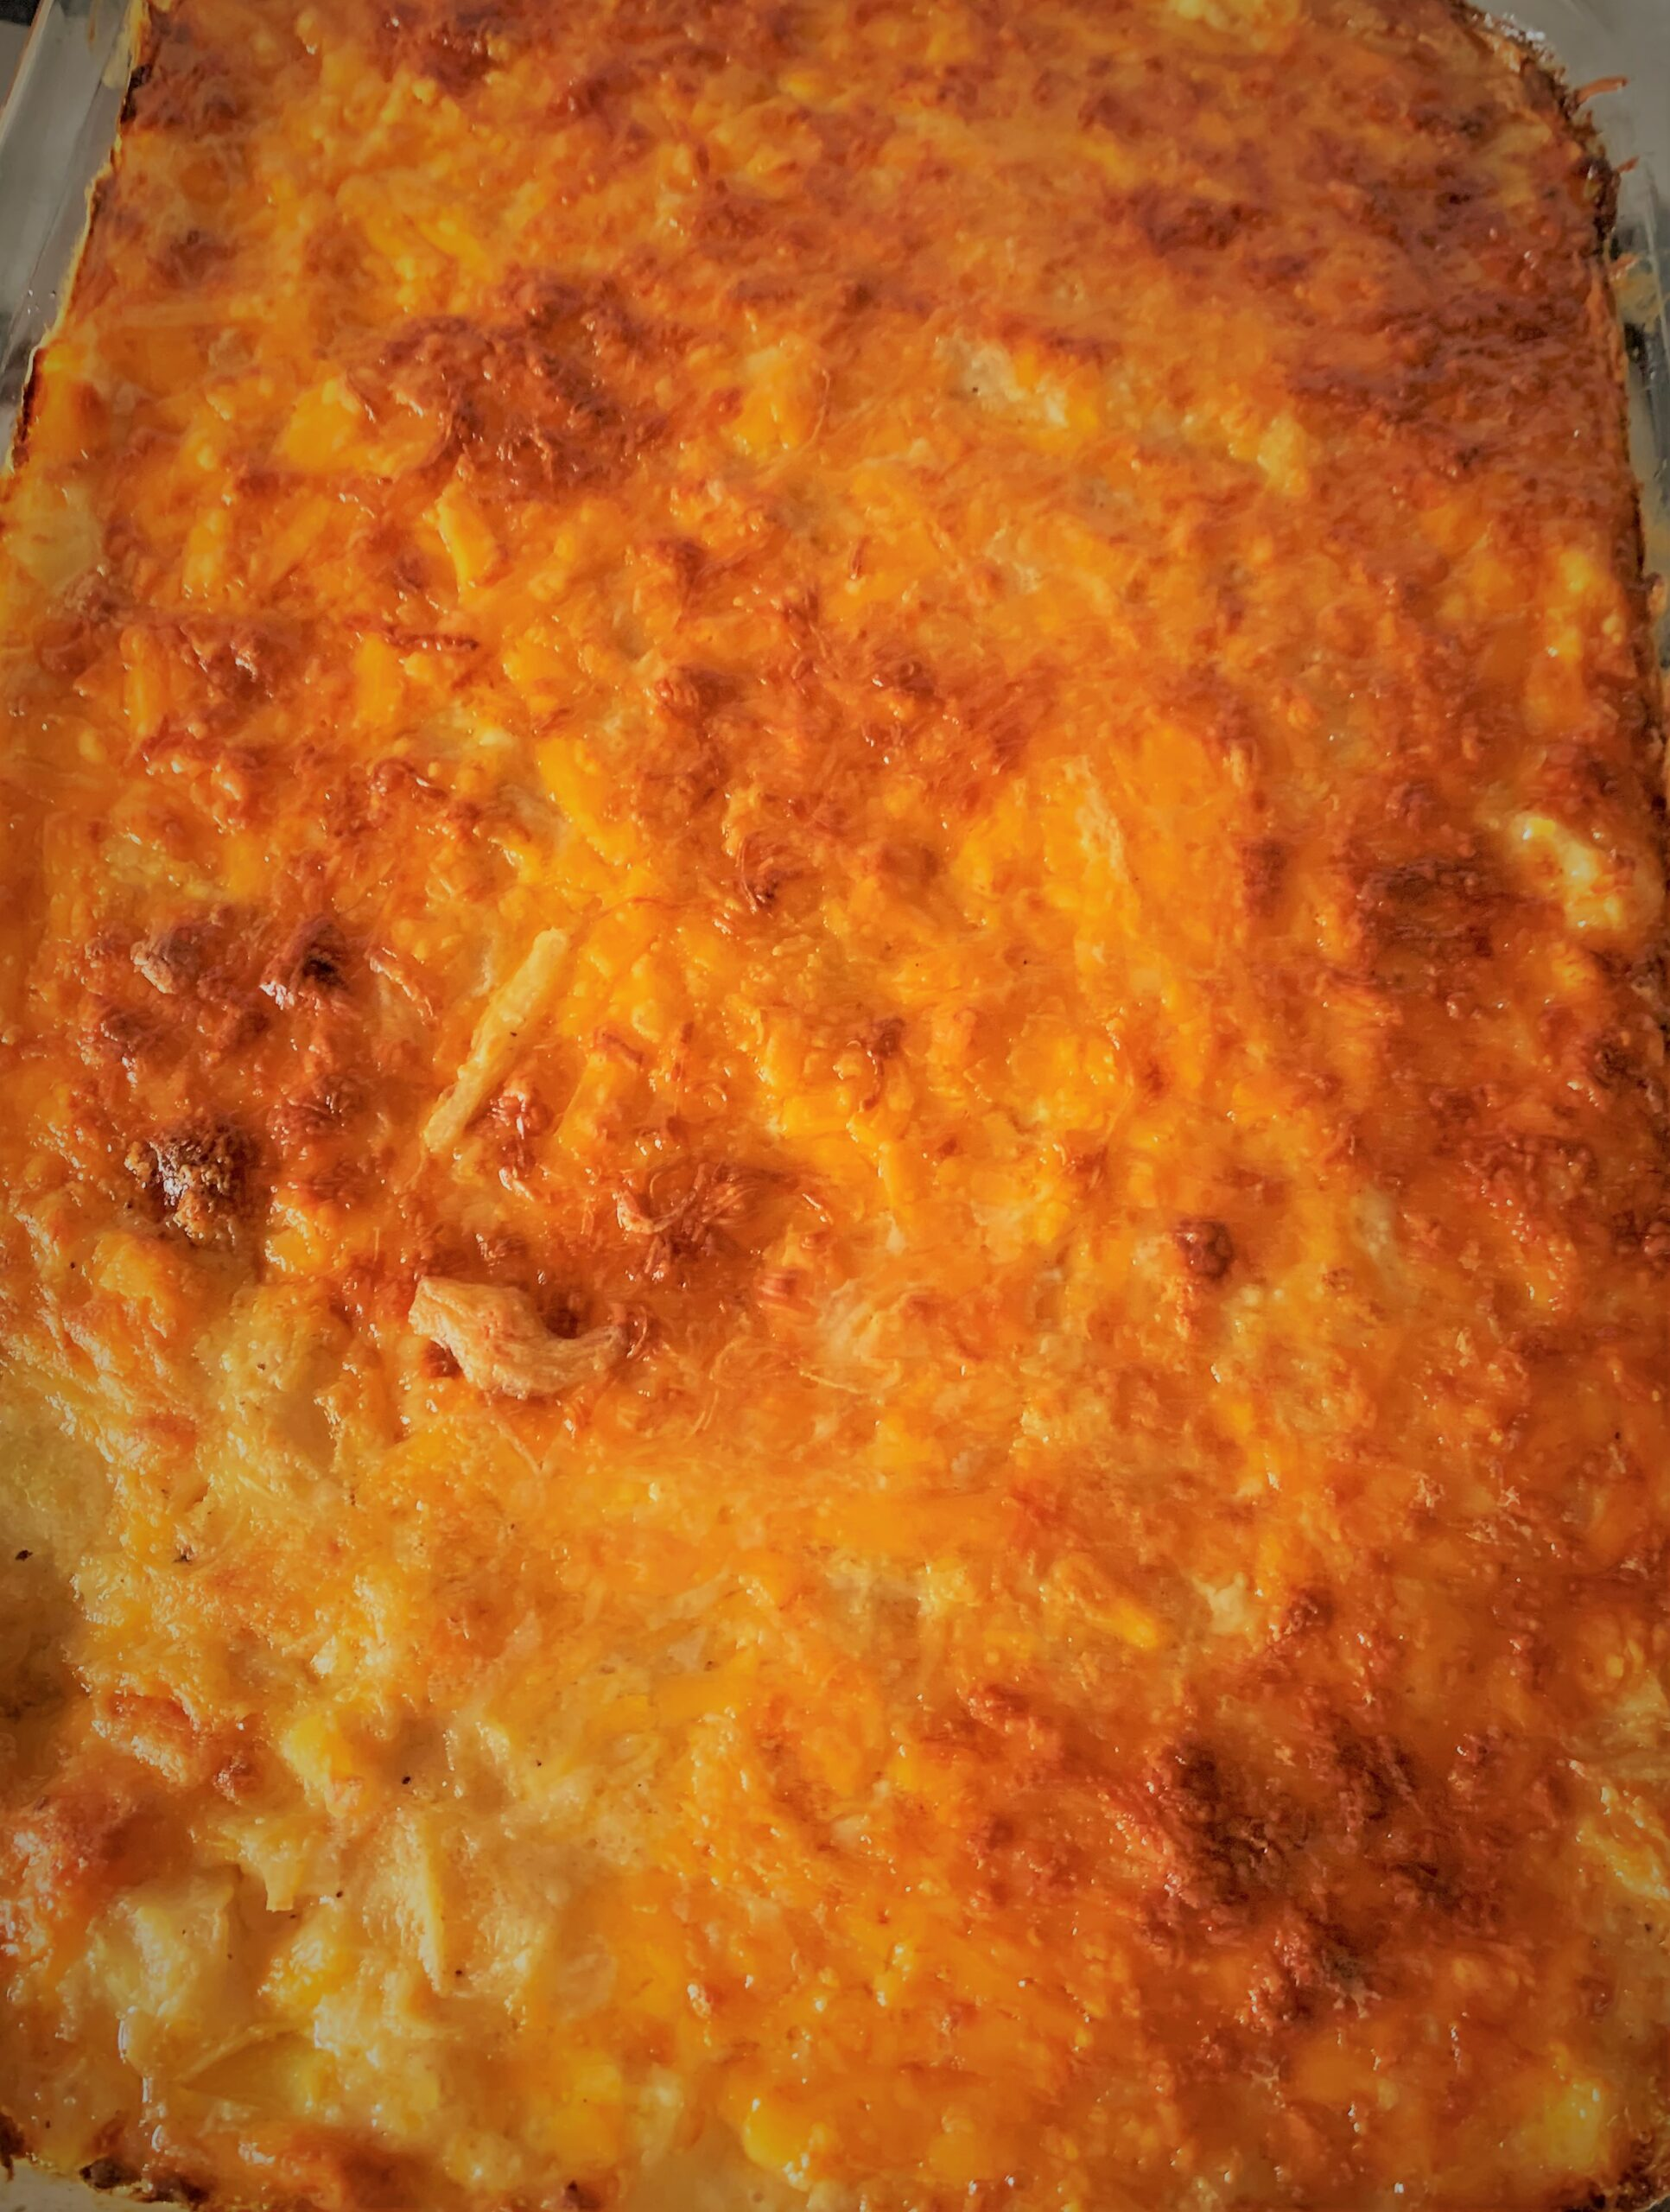 Our fully baked Breakfast Potato Casserole from Akershus Royal Banquet Hall